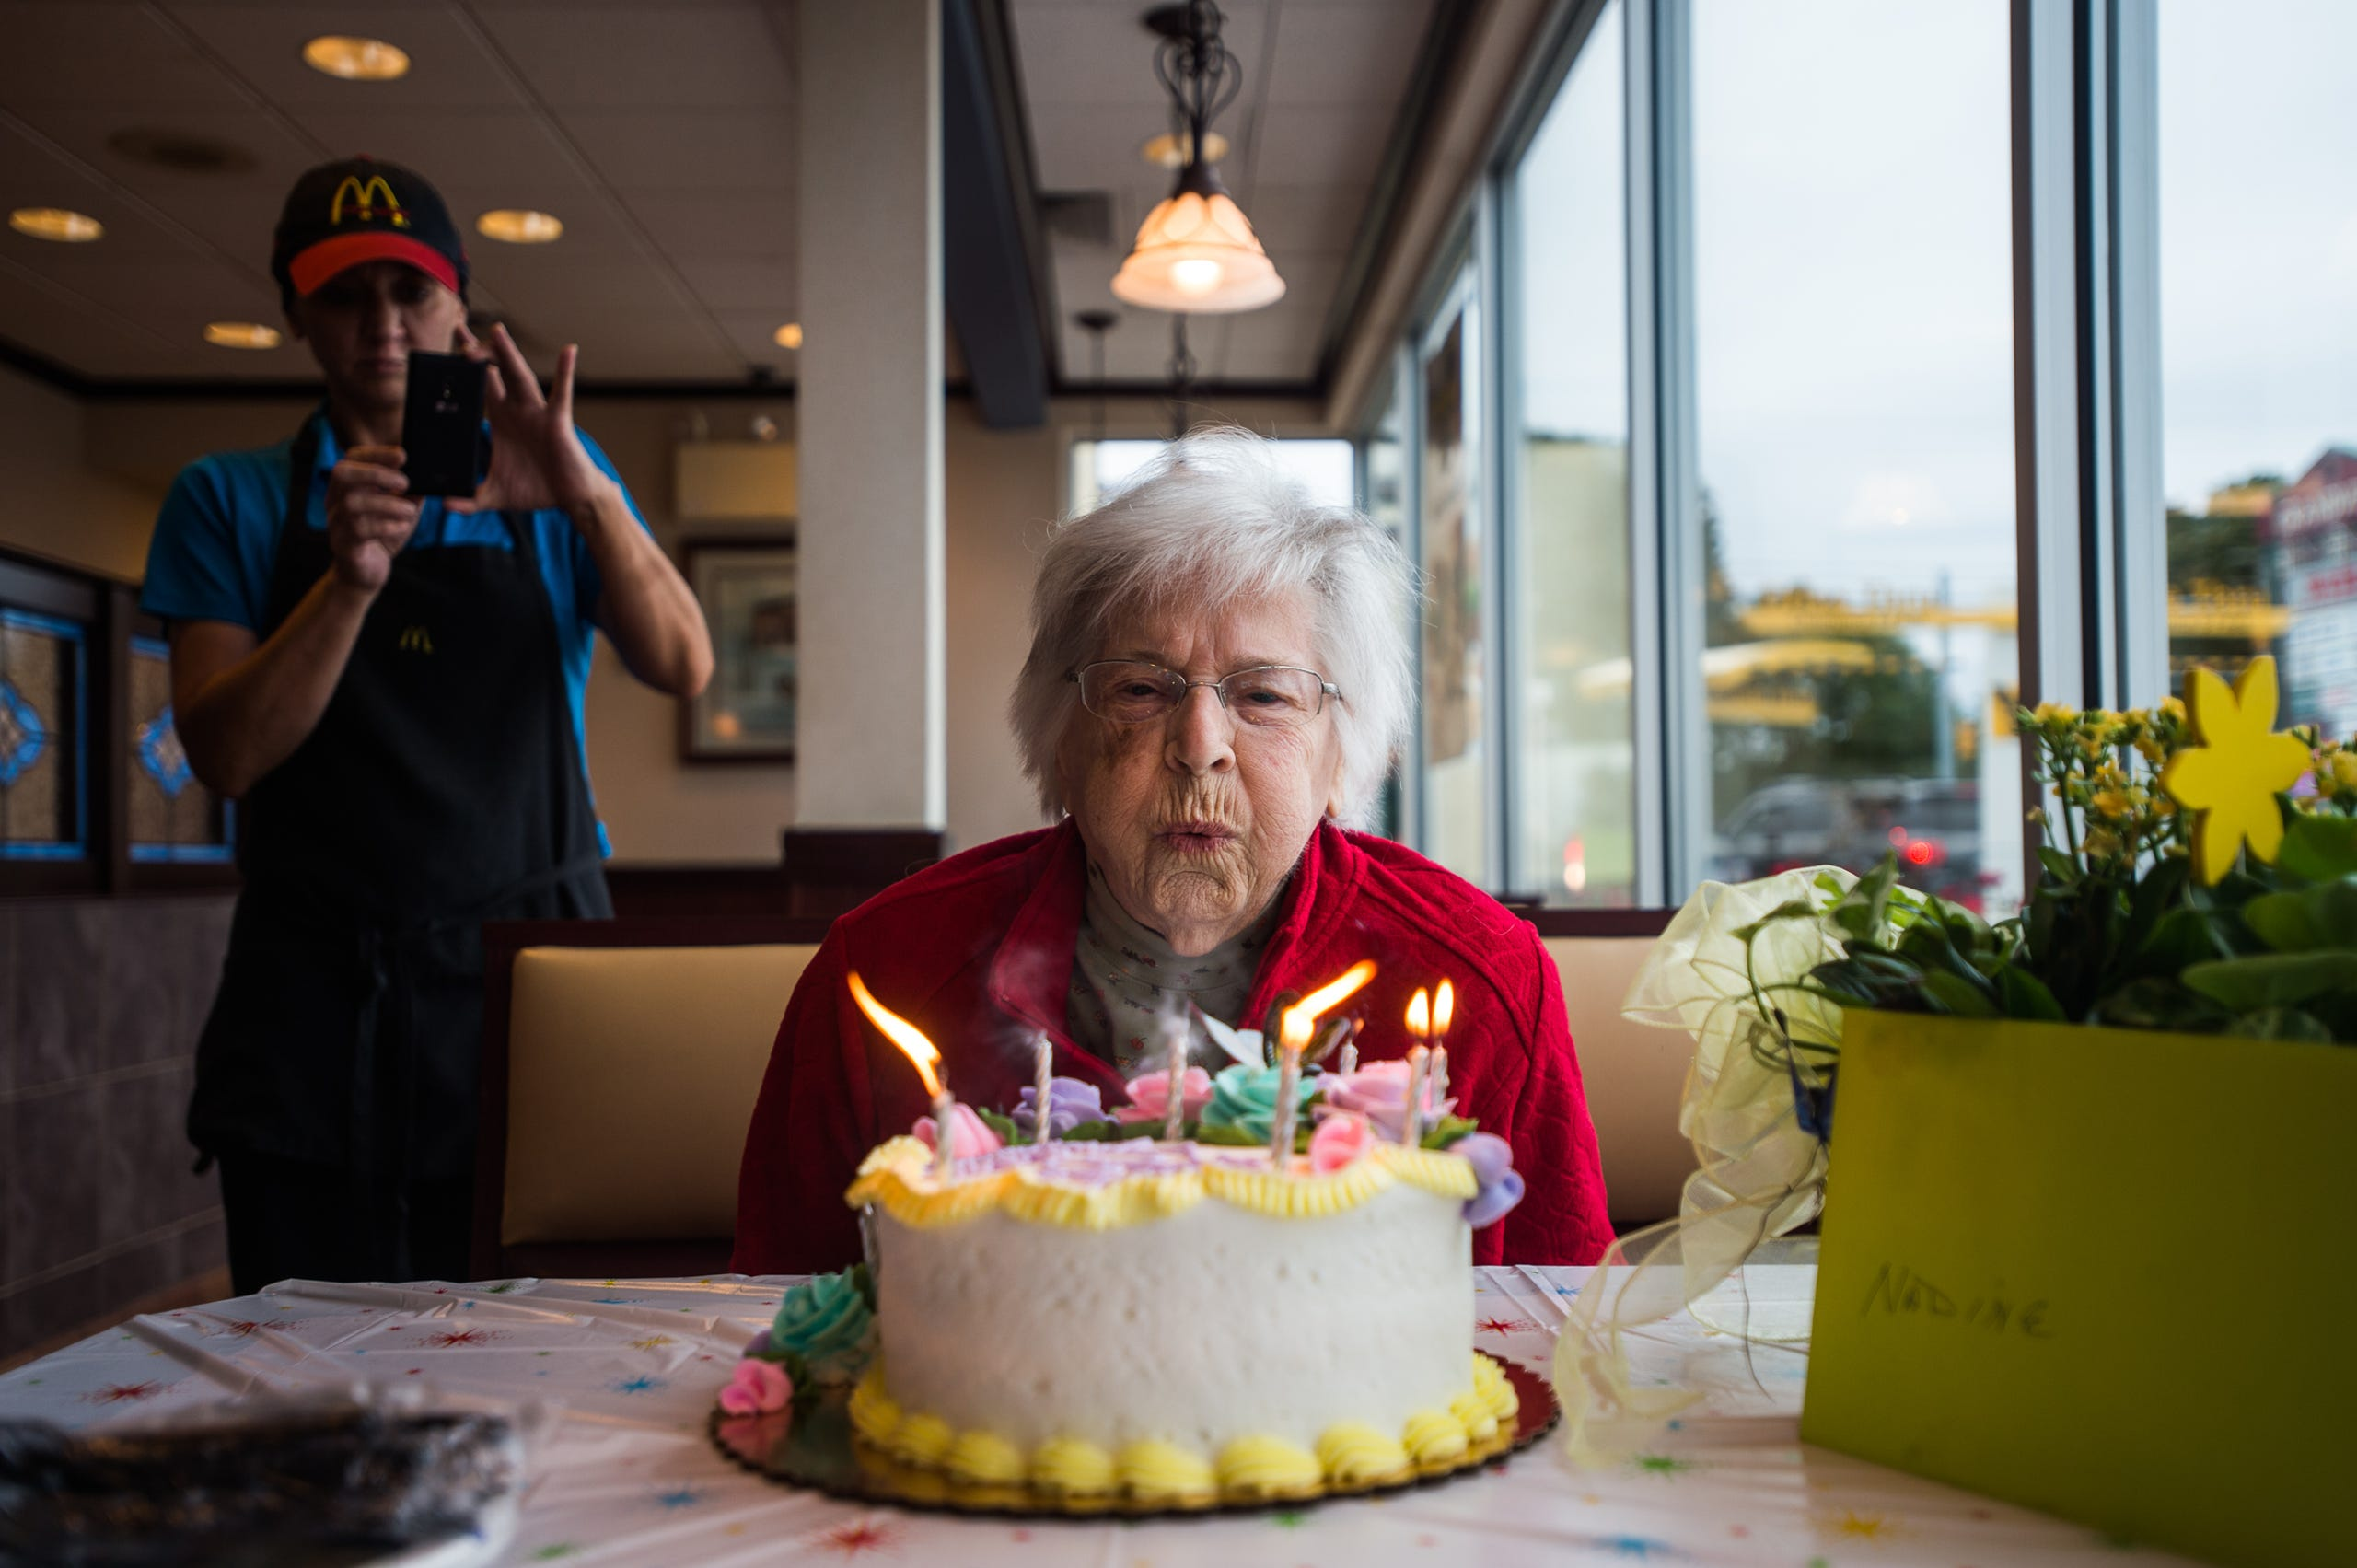 Photos McDonalds Throws Surprise Birthday Party For 100 Year Old